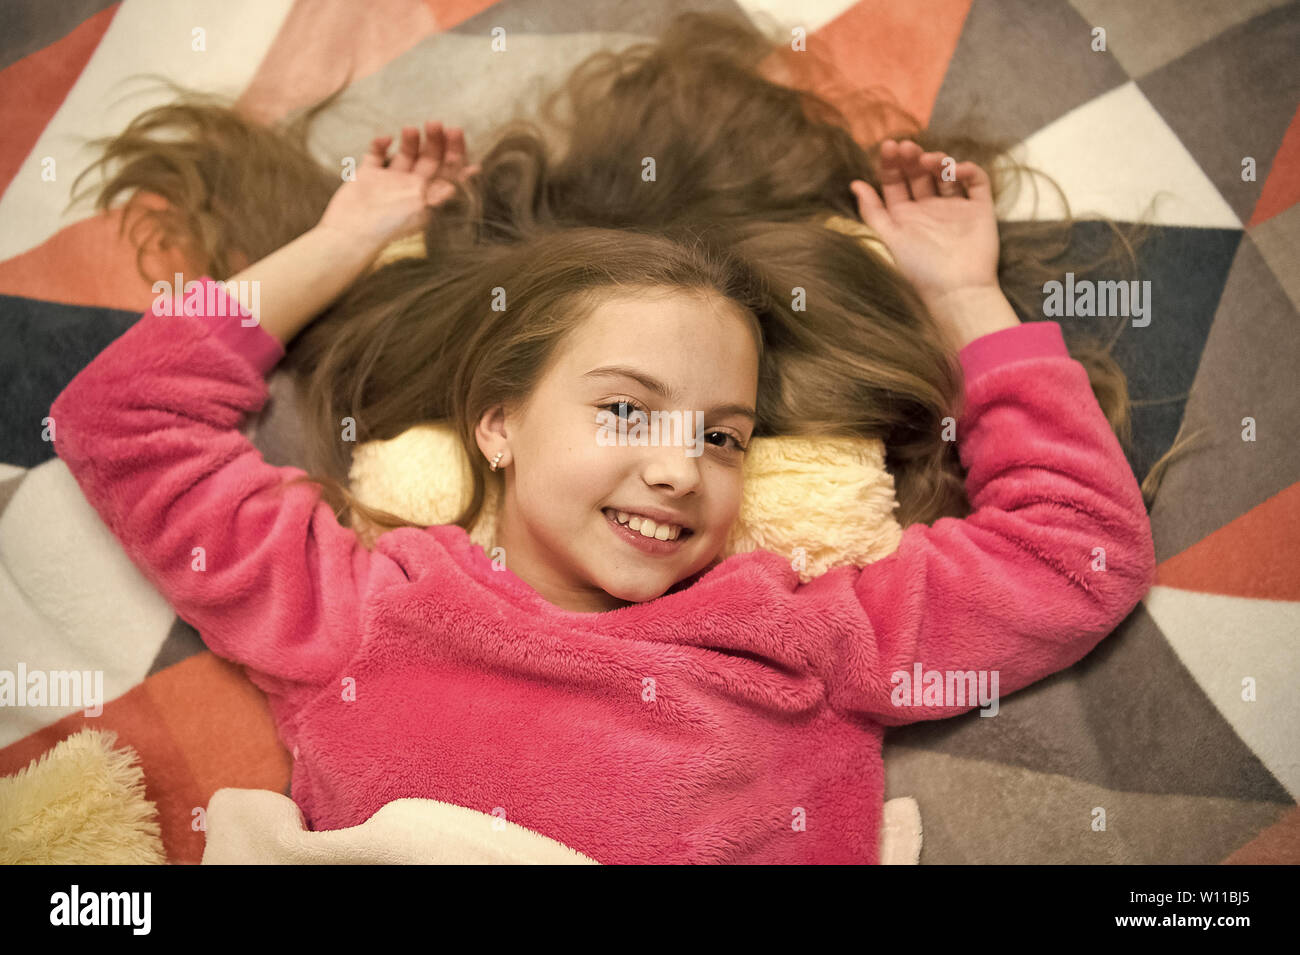 Free guided meditation and relaxation scripts for kids  Girl